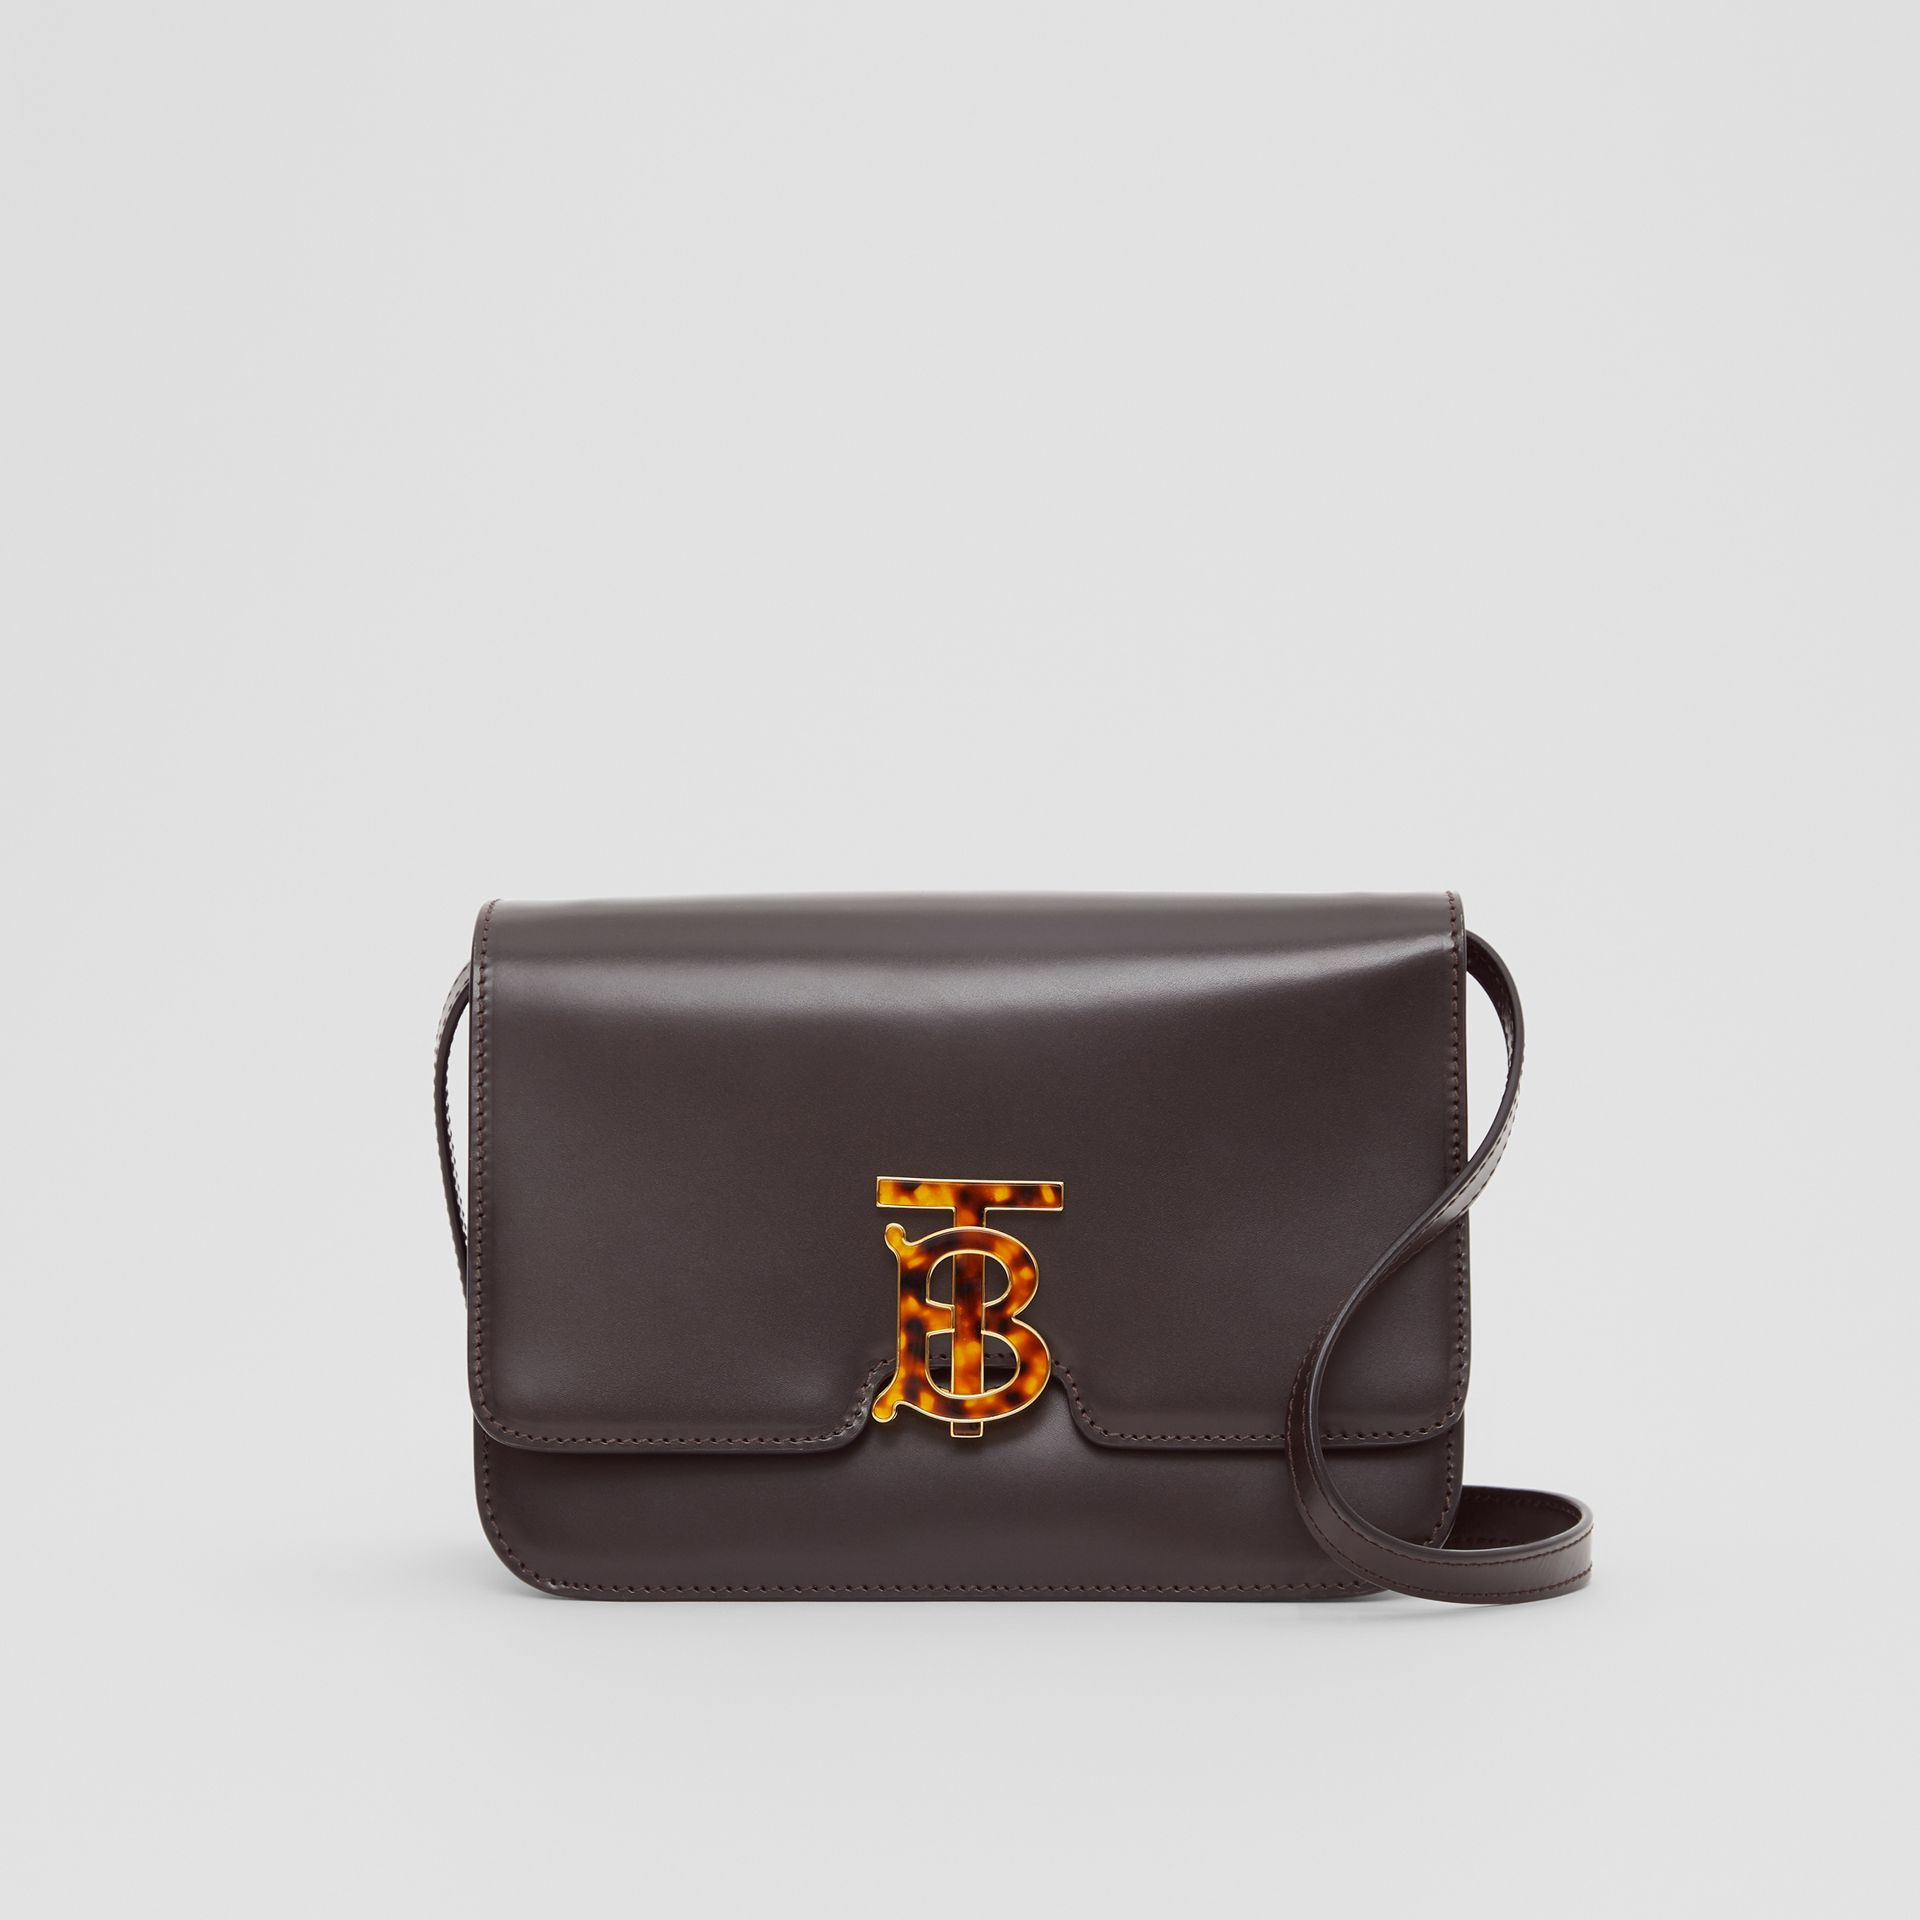 Small Leather TB Bag in Coffee - Women | Burberry United States - gallery image 0